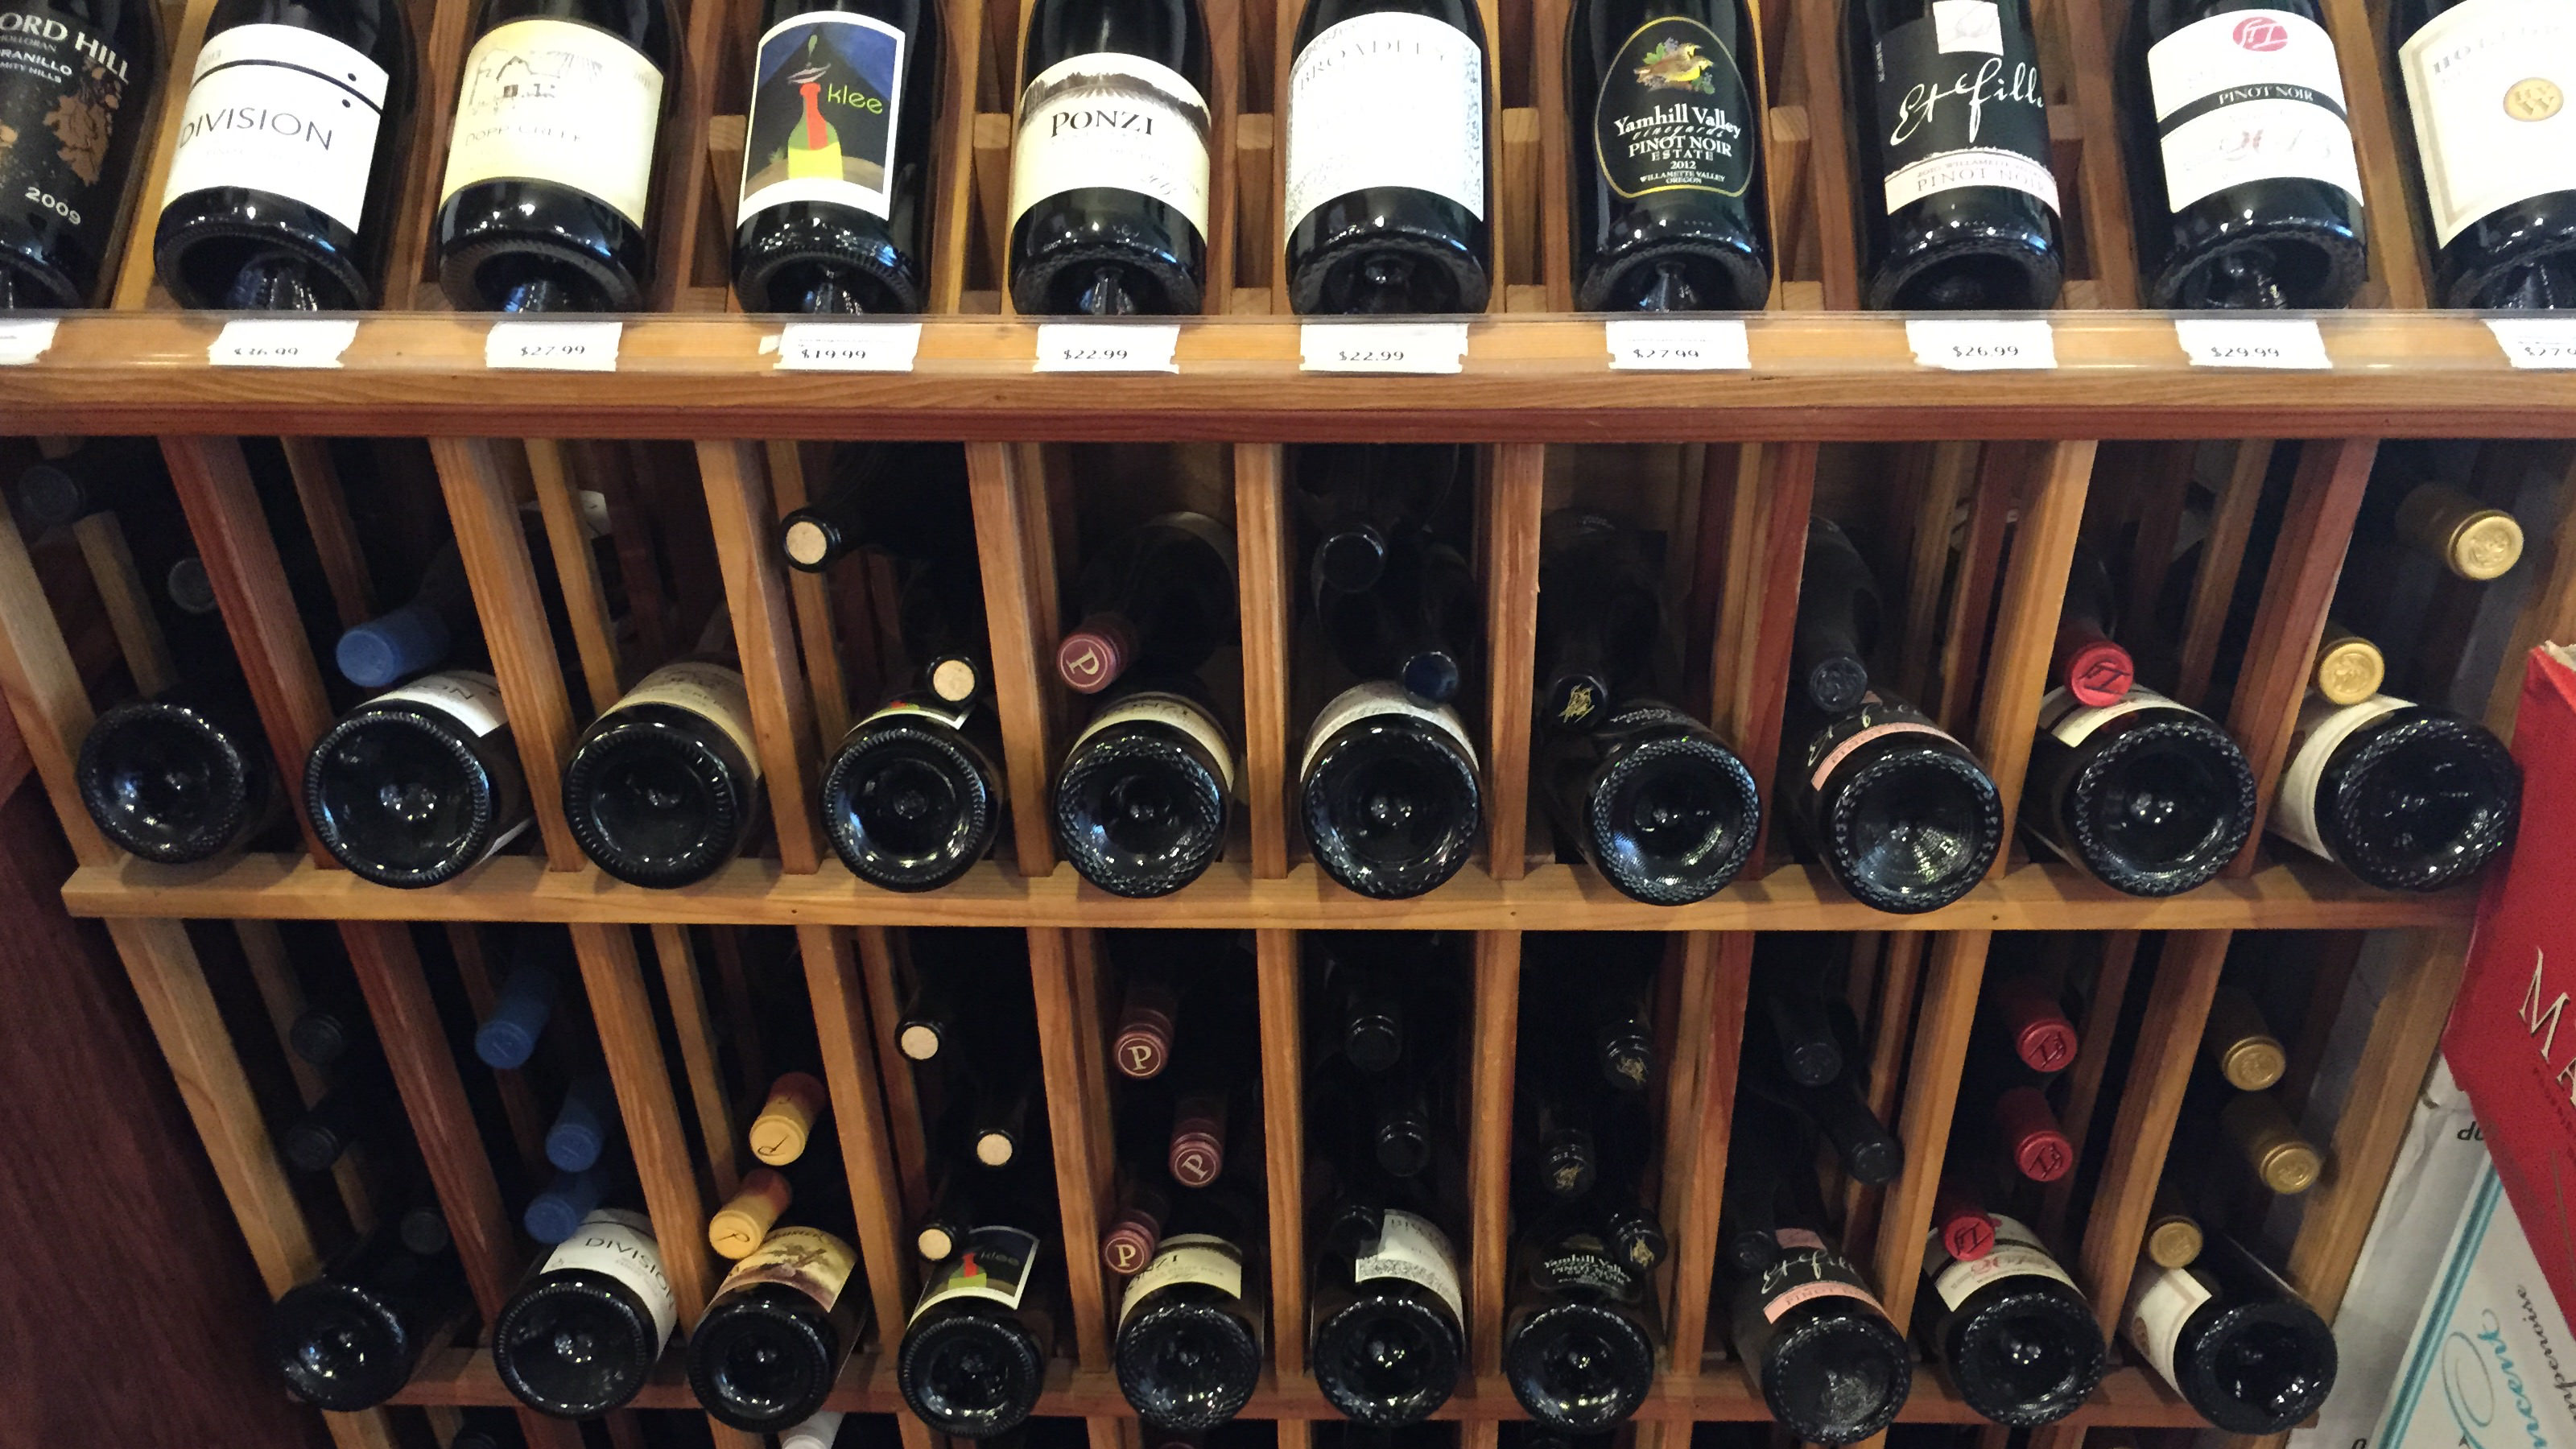 Wines in a Rack